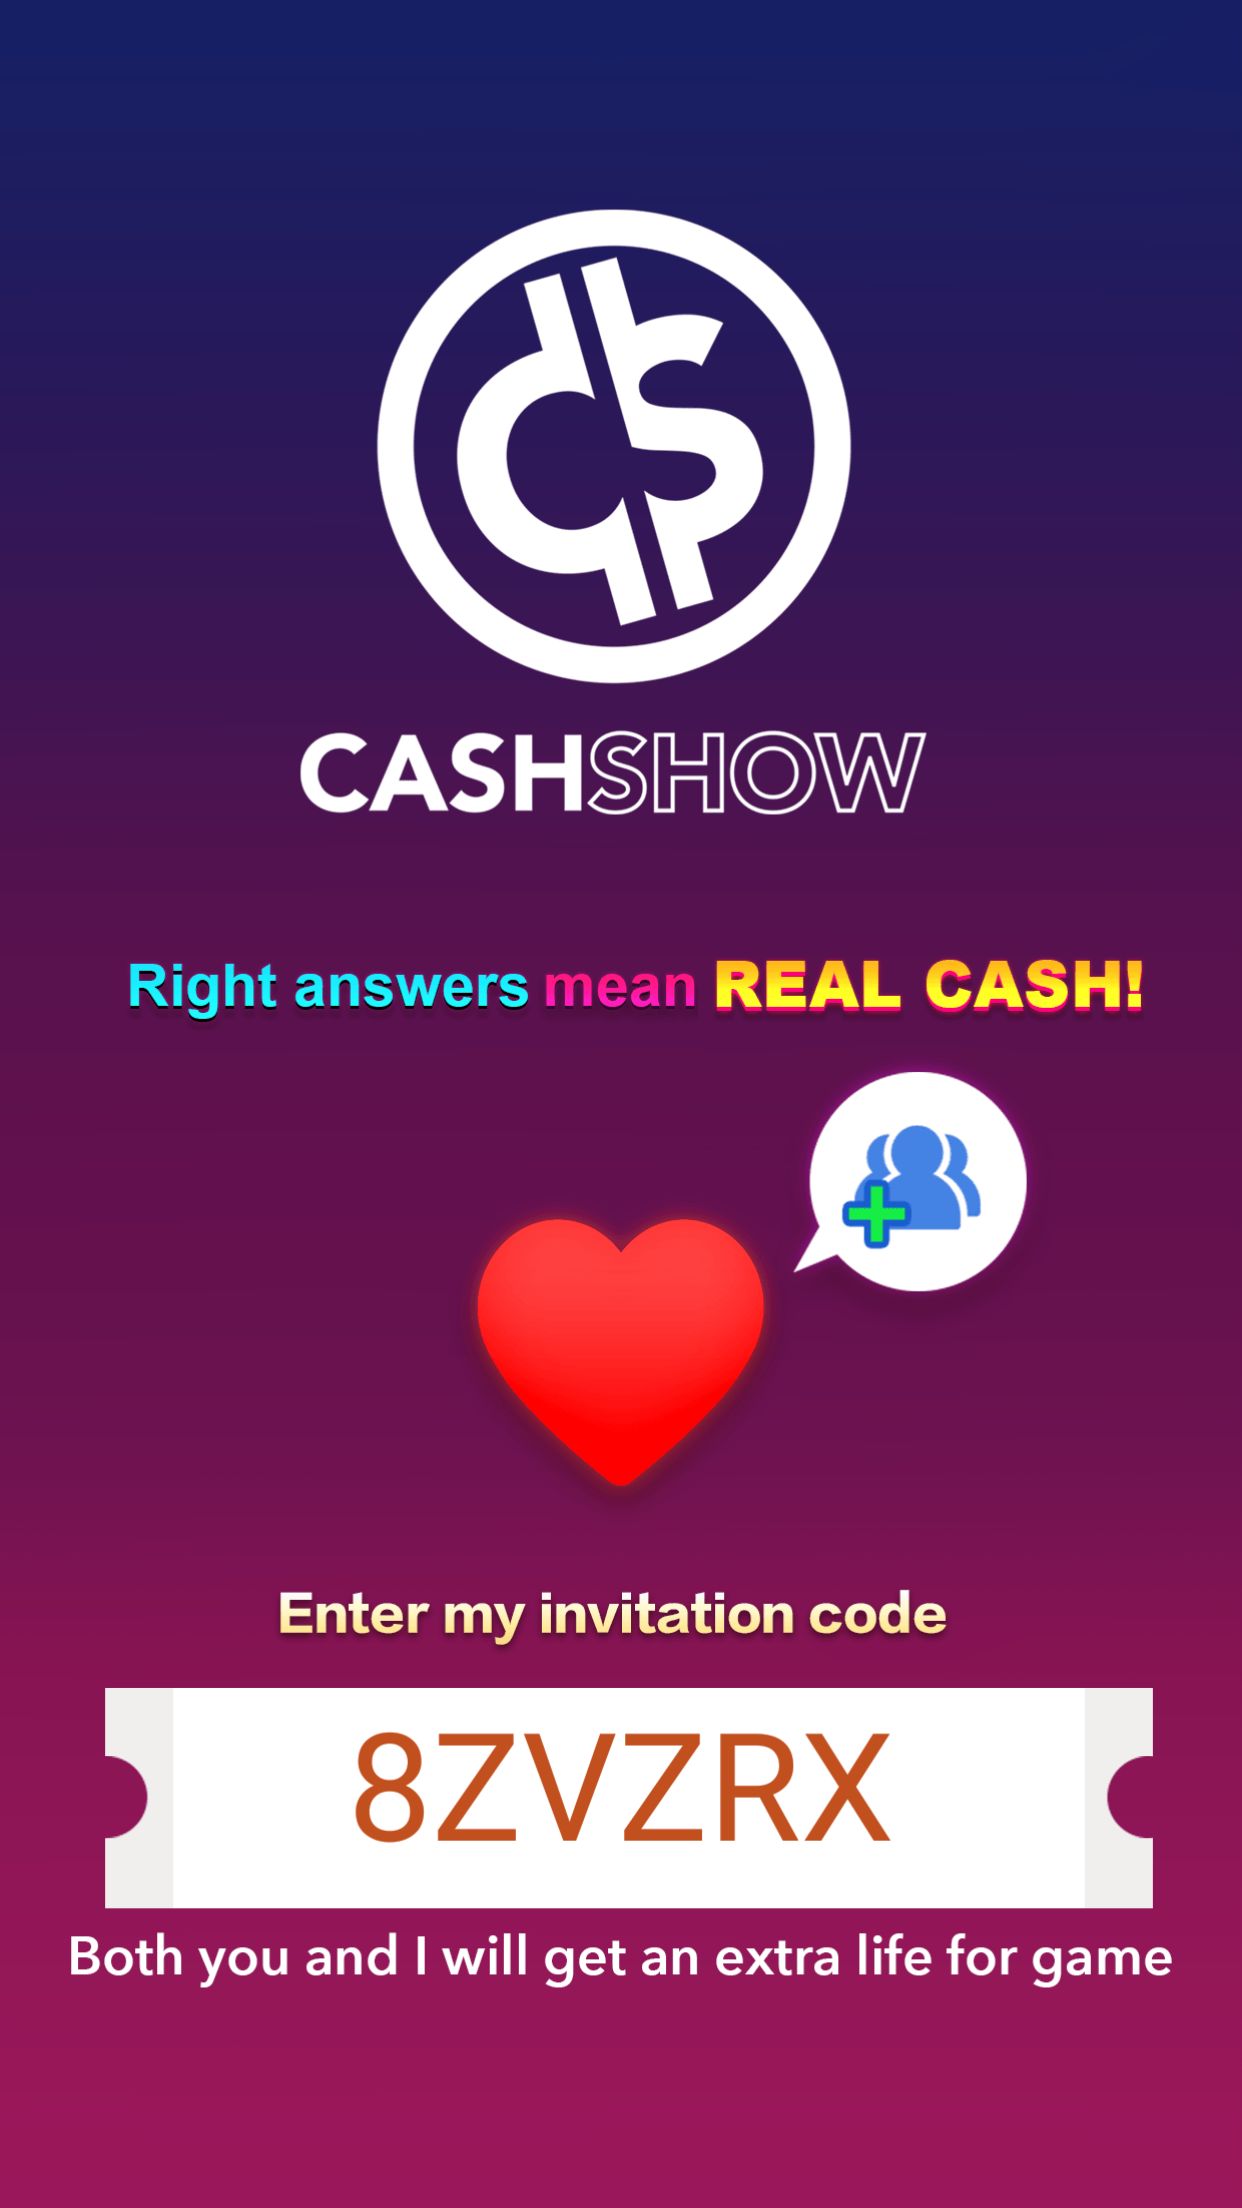 A Cool Cash Game